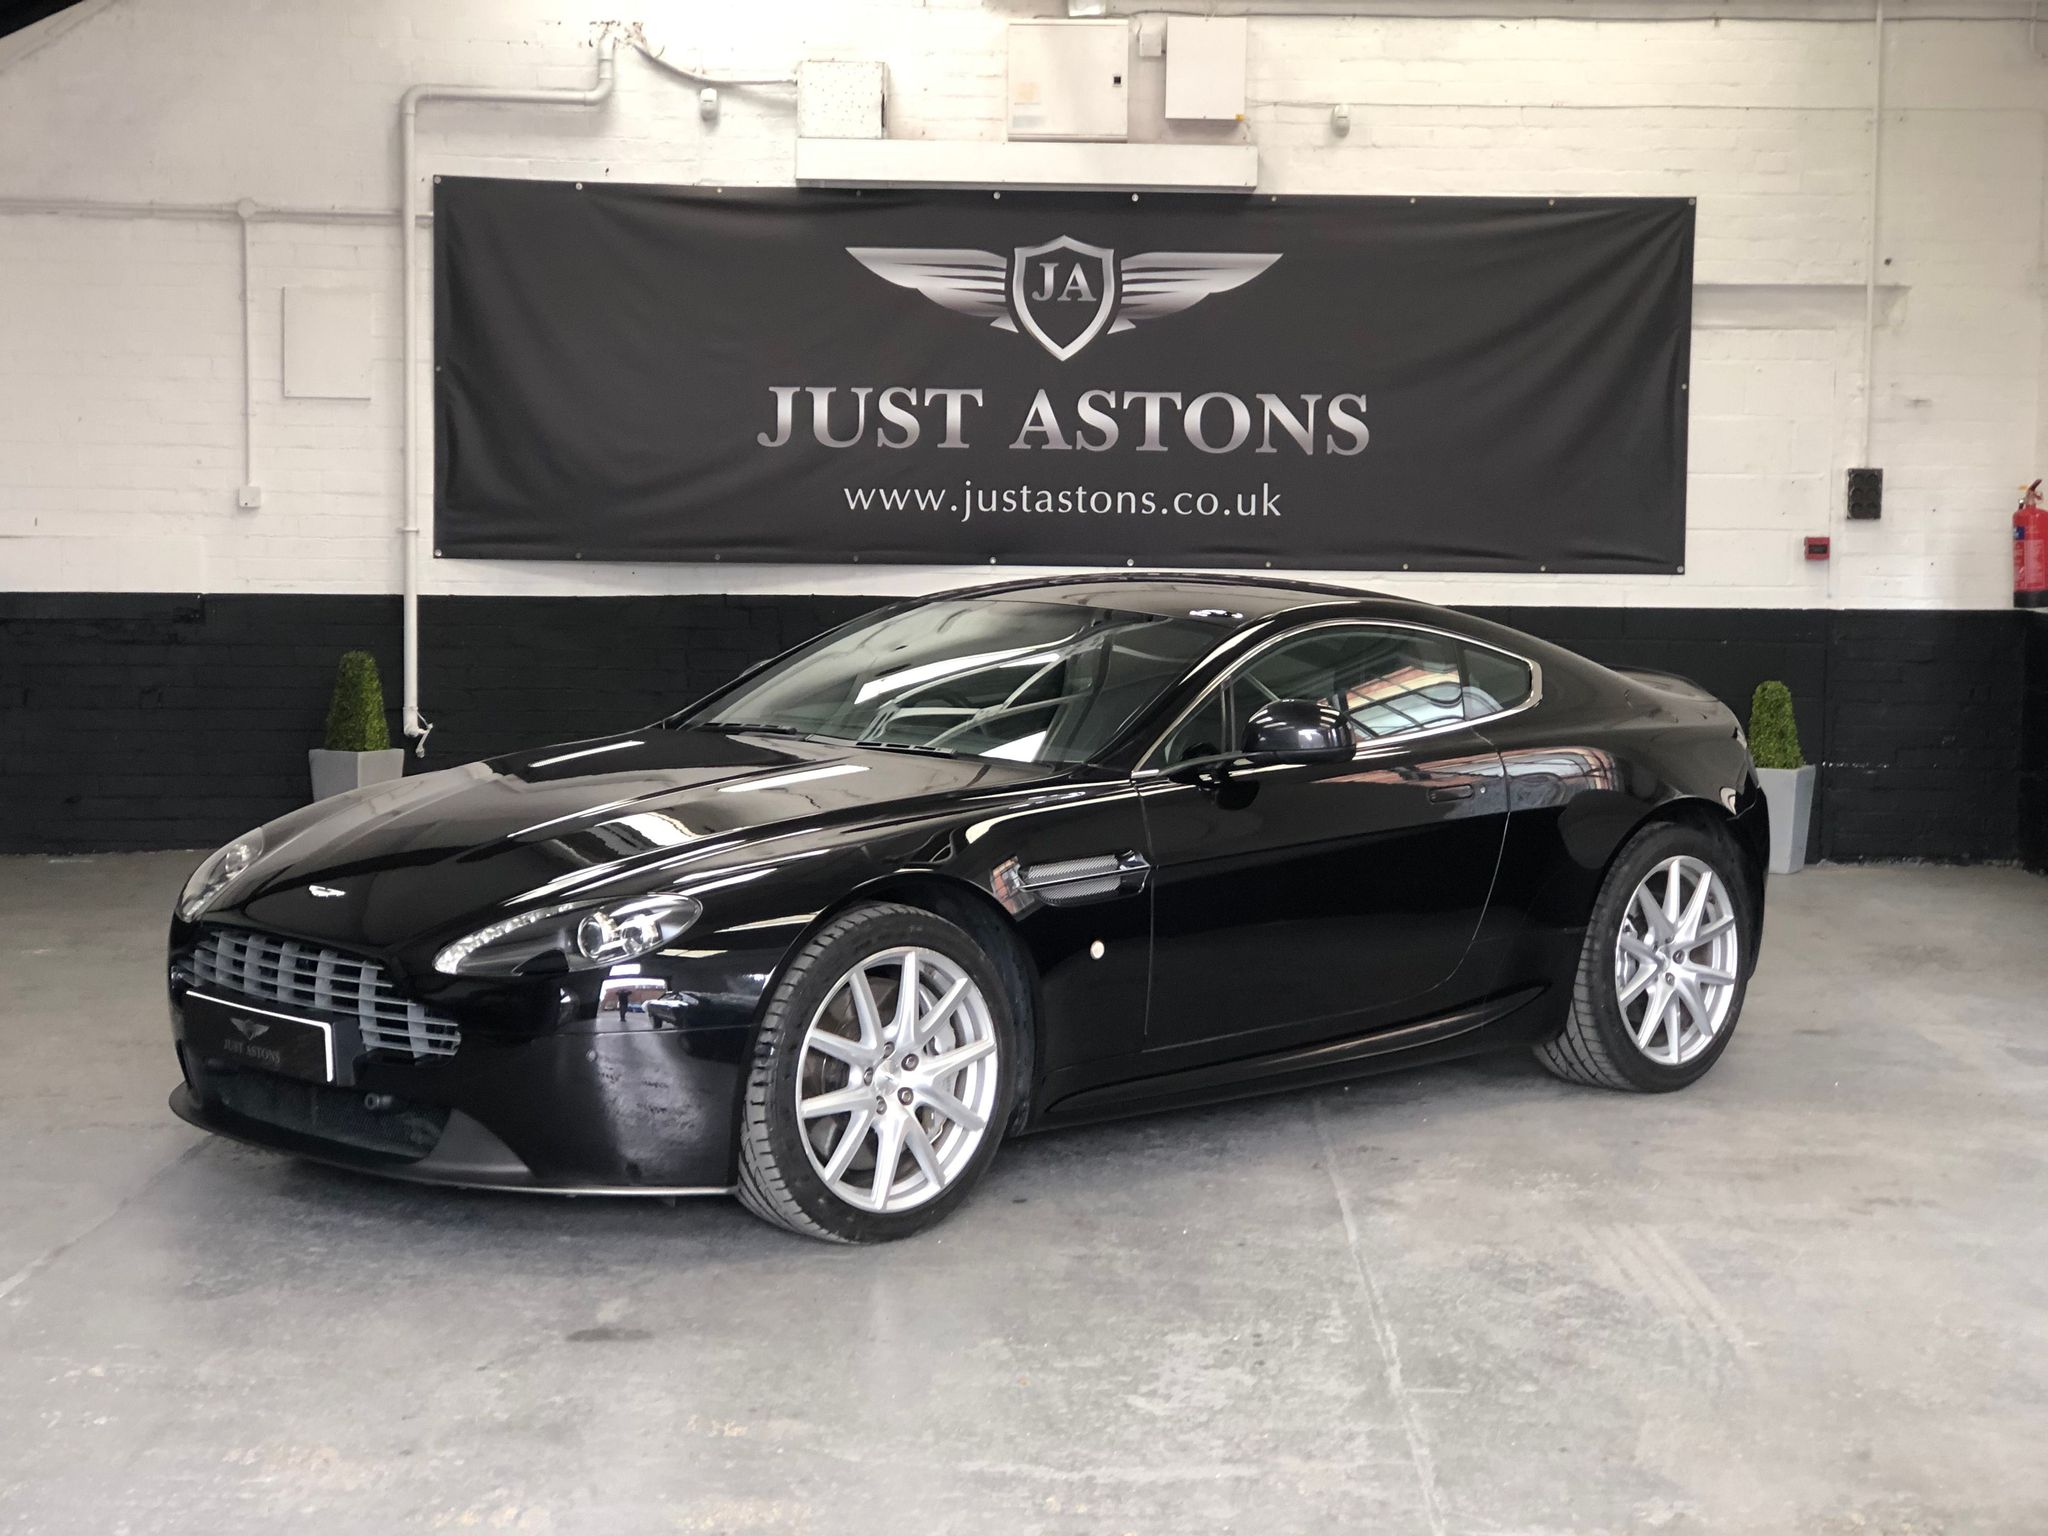 Aston Martin Vantage 4 7 Litre Used Cars For Sale Autotrader Uk